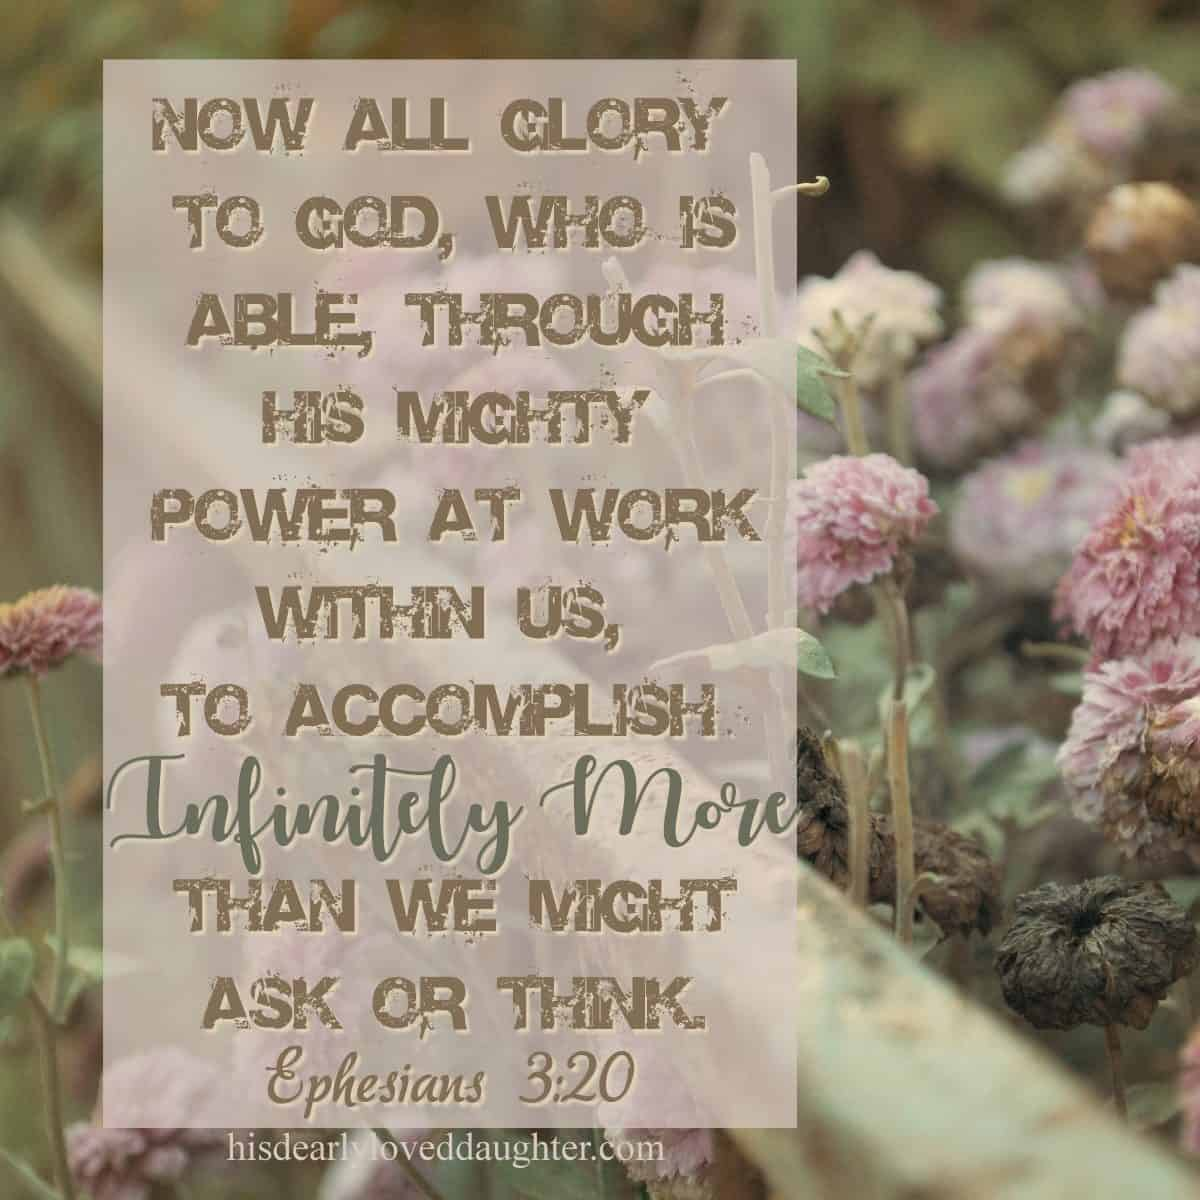 Now all glory to God, who is able, through His mighty power at work within us, to accomplish infinitely more than we might ask or think. Ephesians 3:20